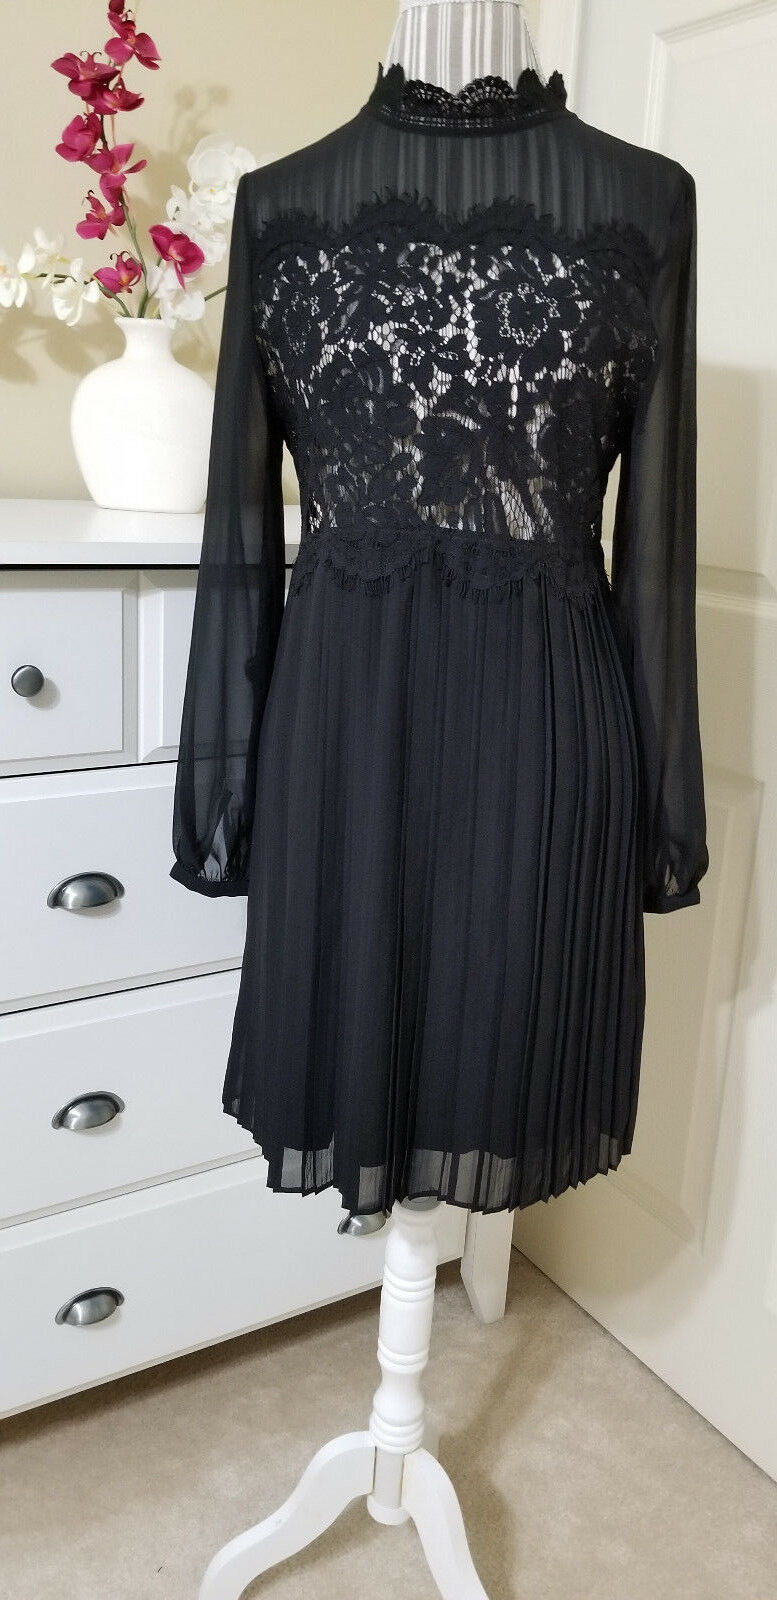 NWT LES PETITES LUX Robe Daniela Ladies schwarz Lace Dress Long Sleeve Sz. S